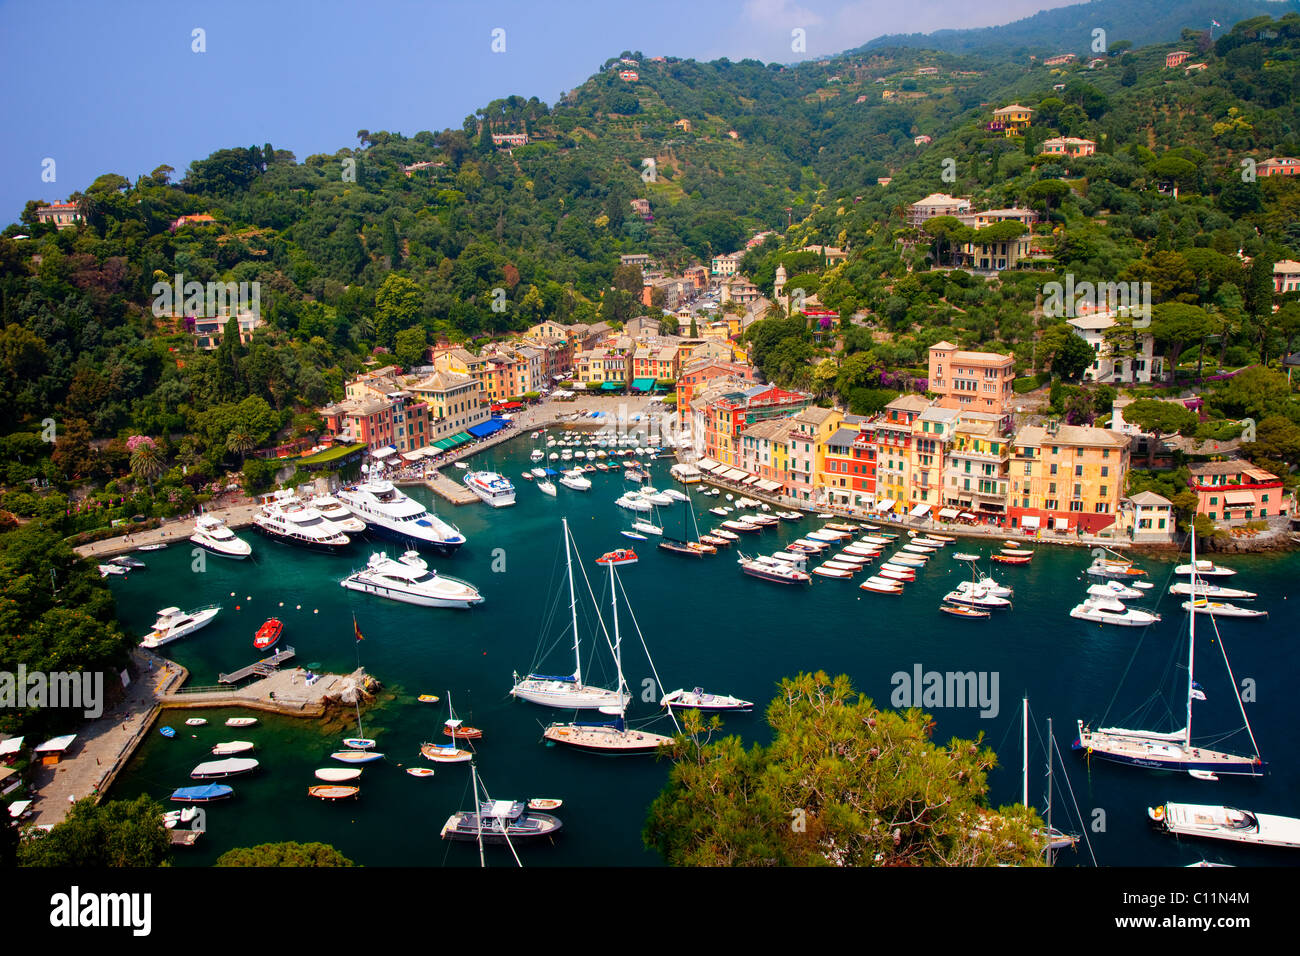 Boats moored in the tiny harbor of Portofino, Liguria Italy - Stock Image